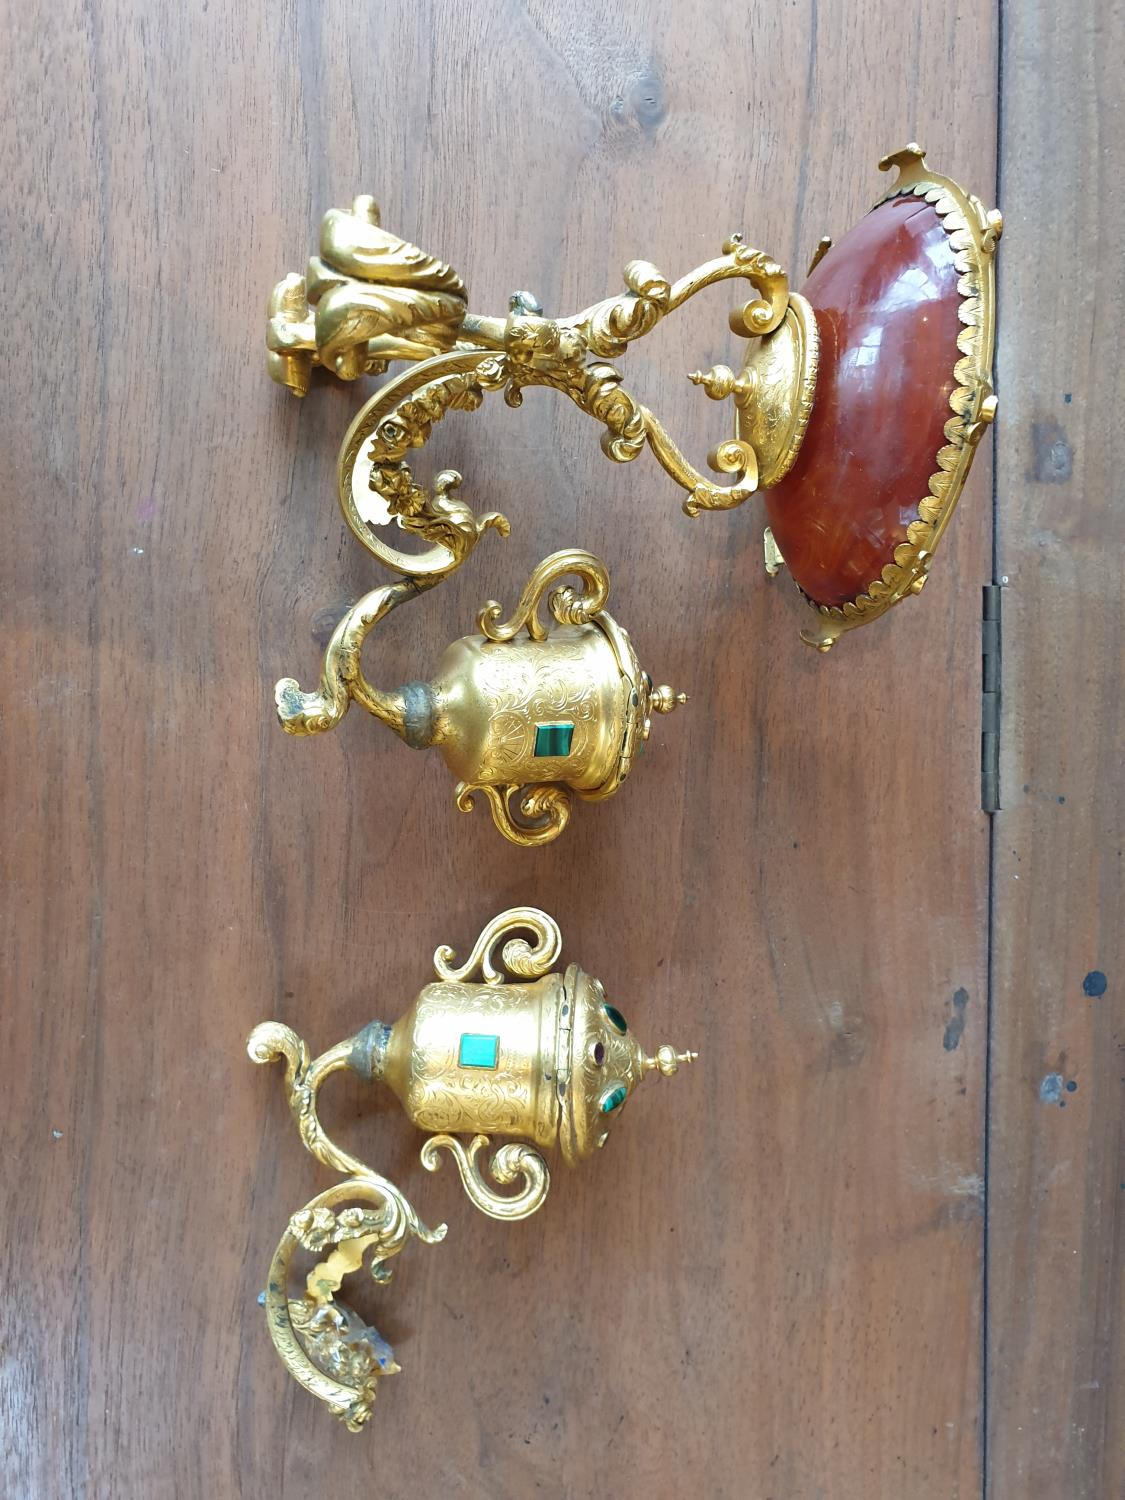 Lot 332A - A 19th Century Ormolu Urn Stand with semi precious stone mounts along with another piece.